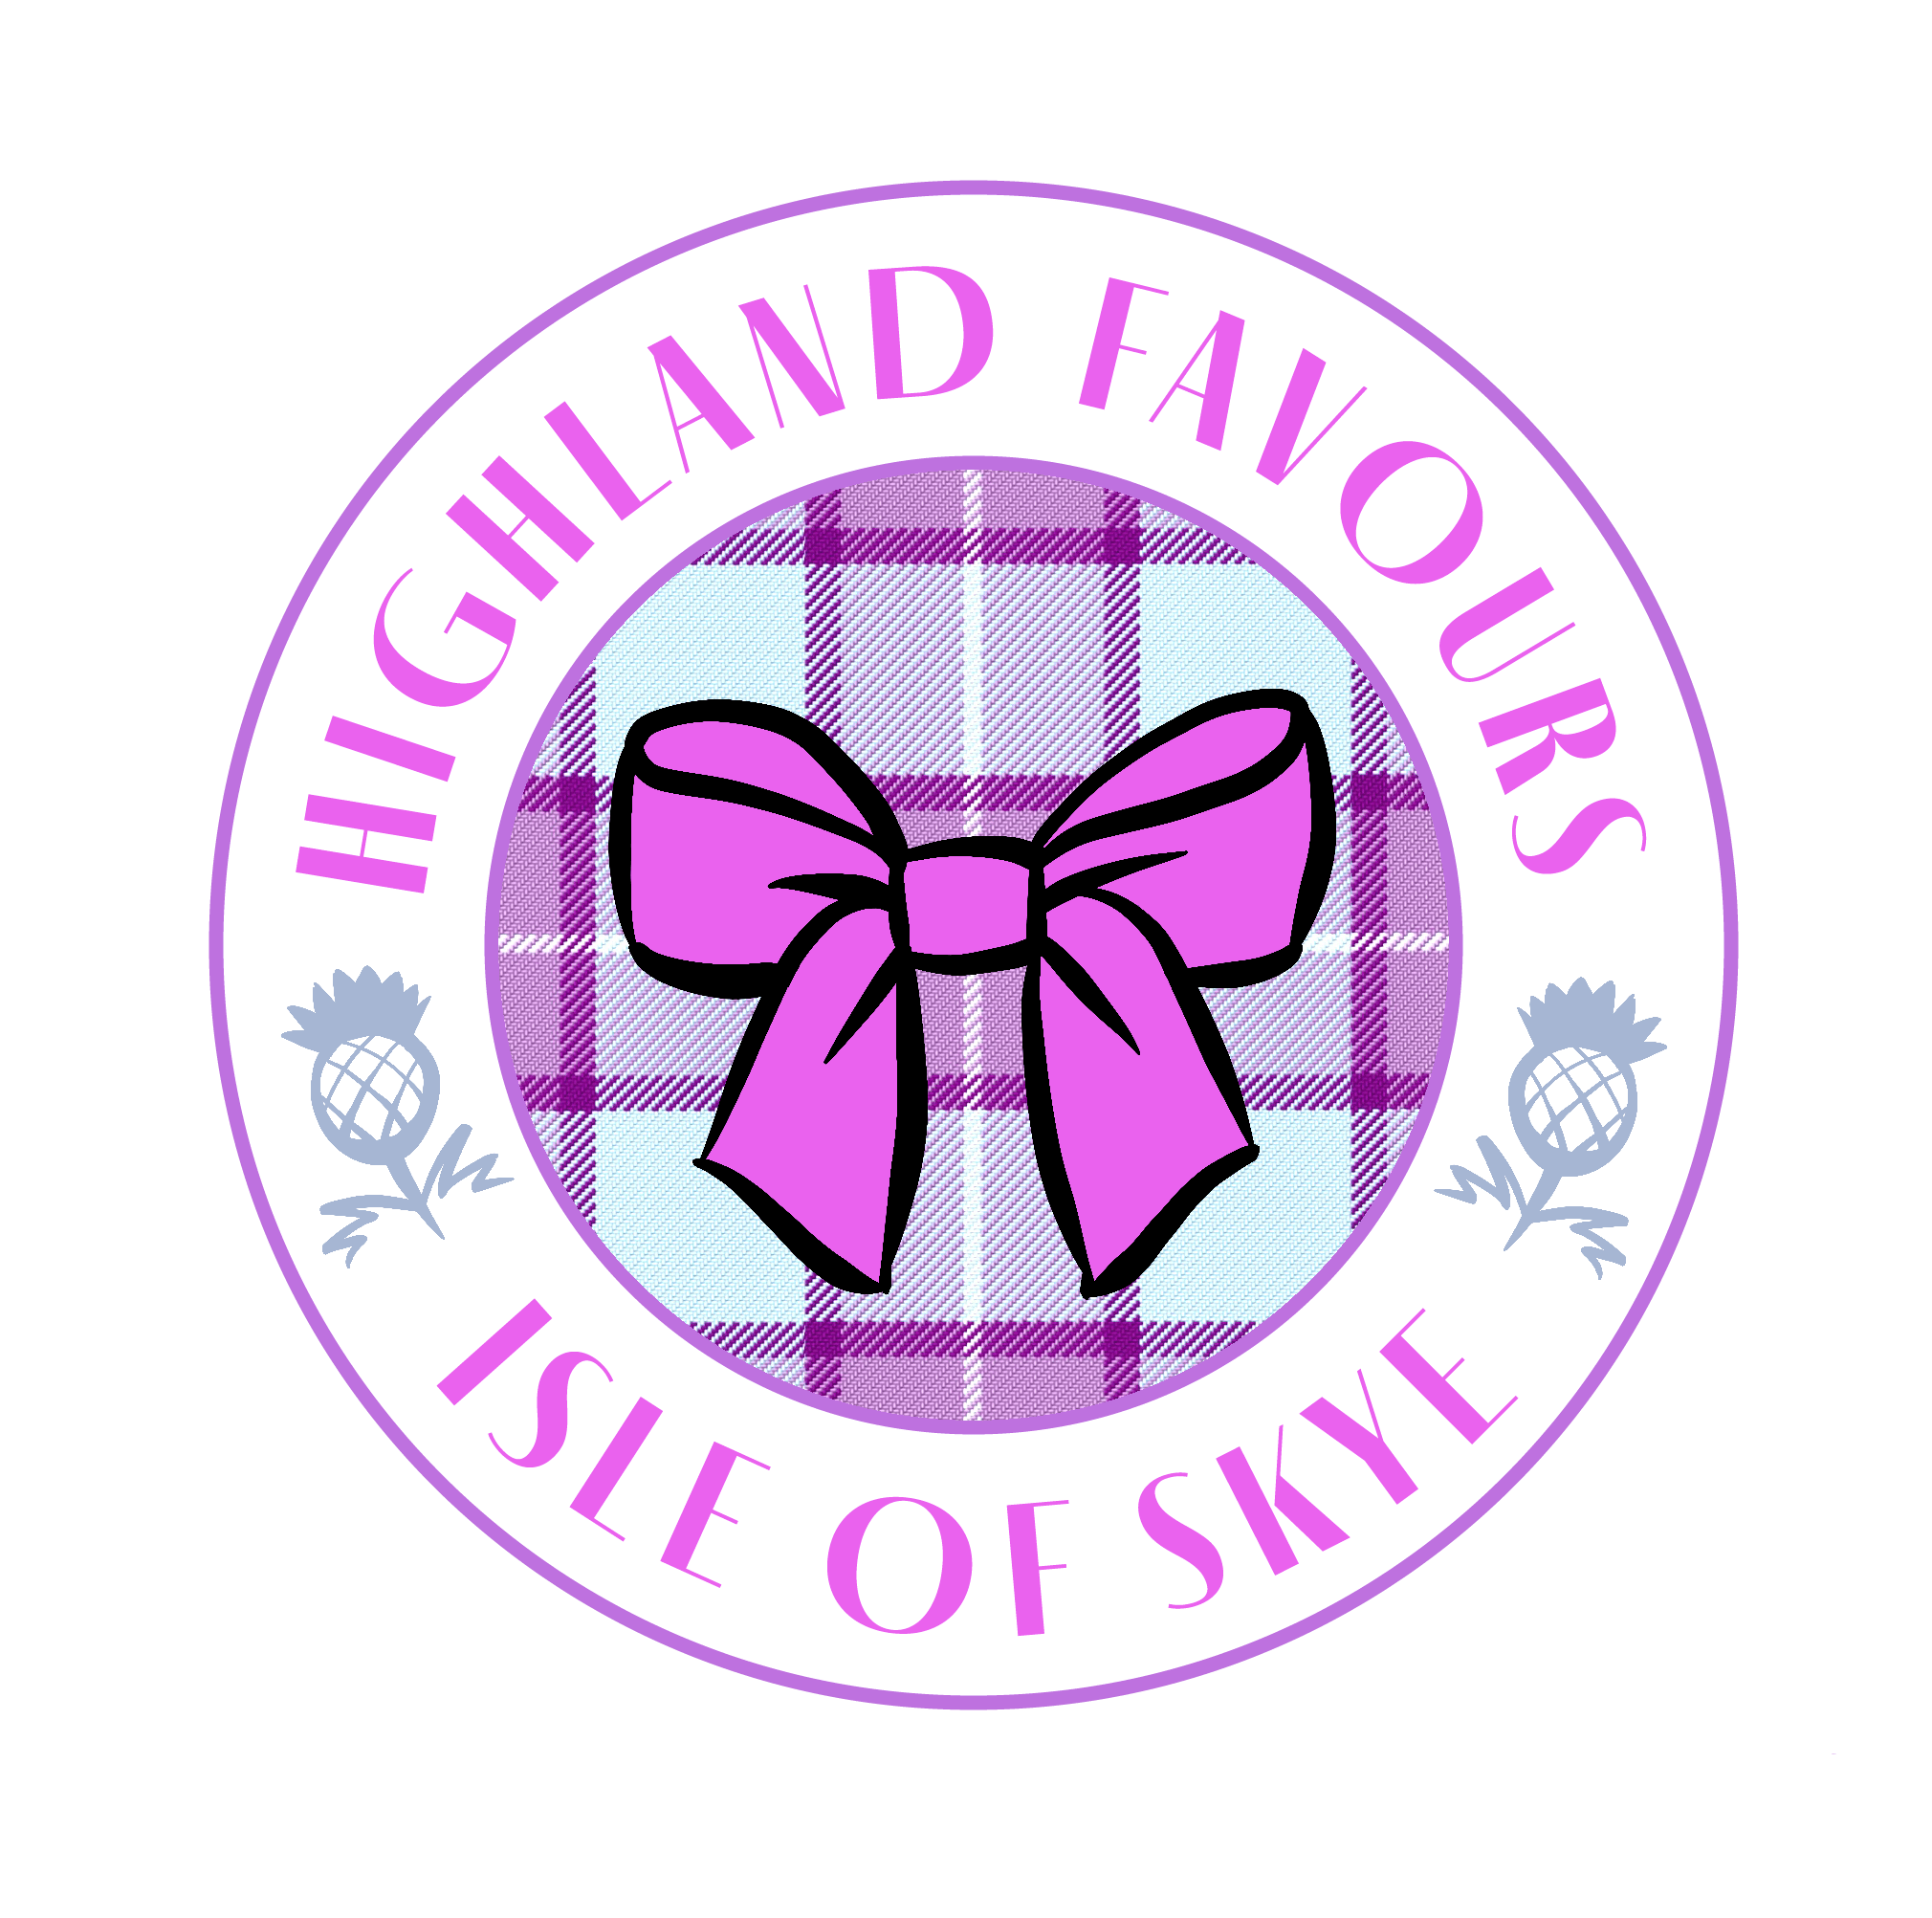 Highland Favours from Isle of Skye